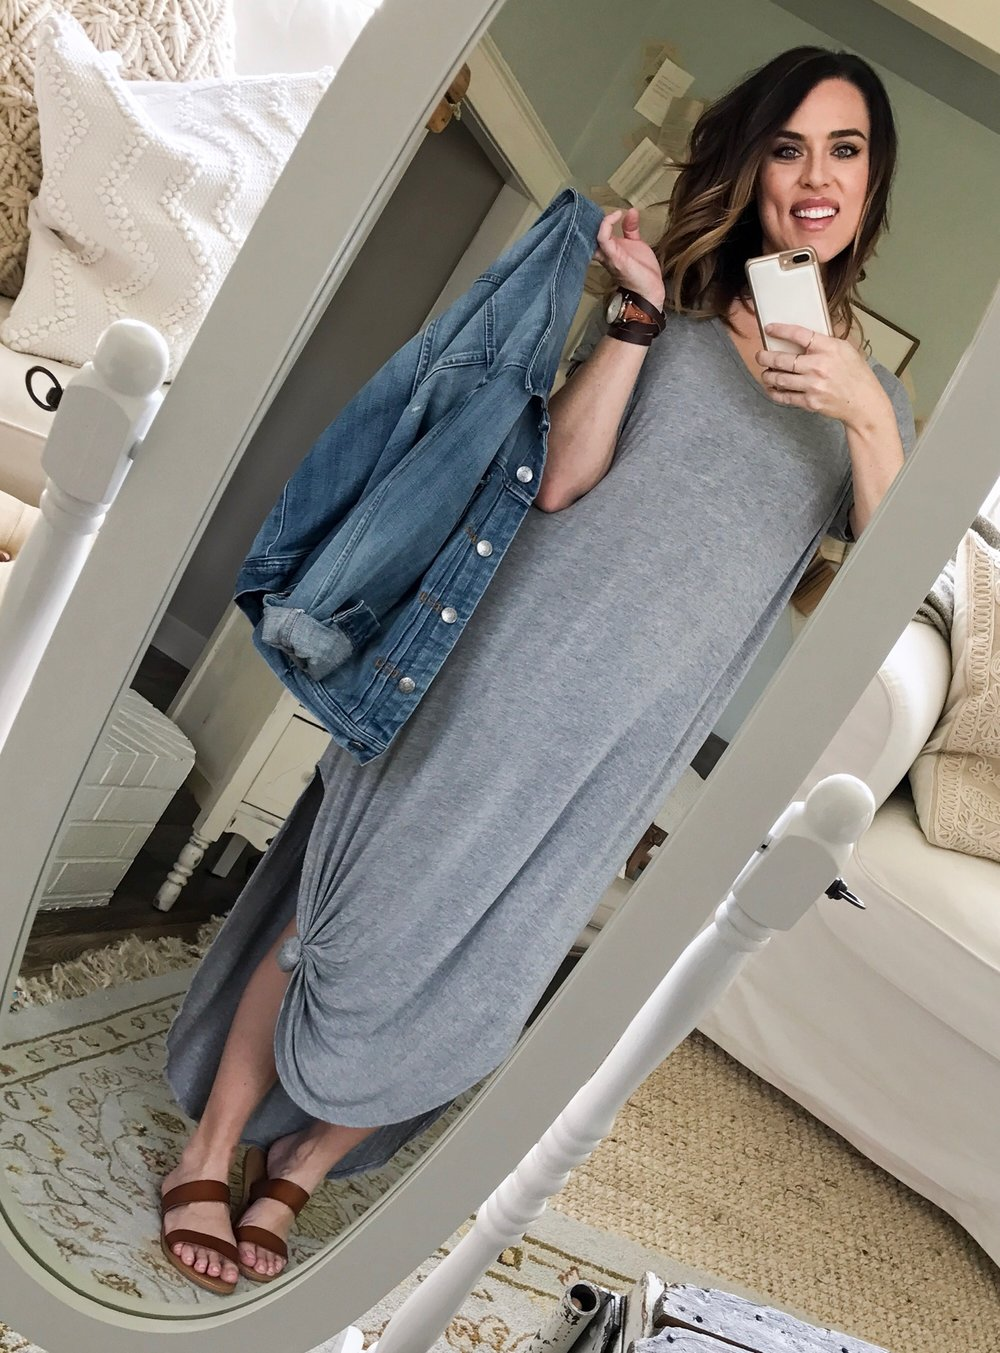 Cotton Stem Blog capsule wardrobe grey shirt dress denim jacket.jpeg